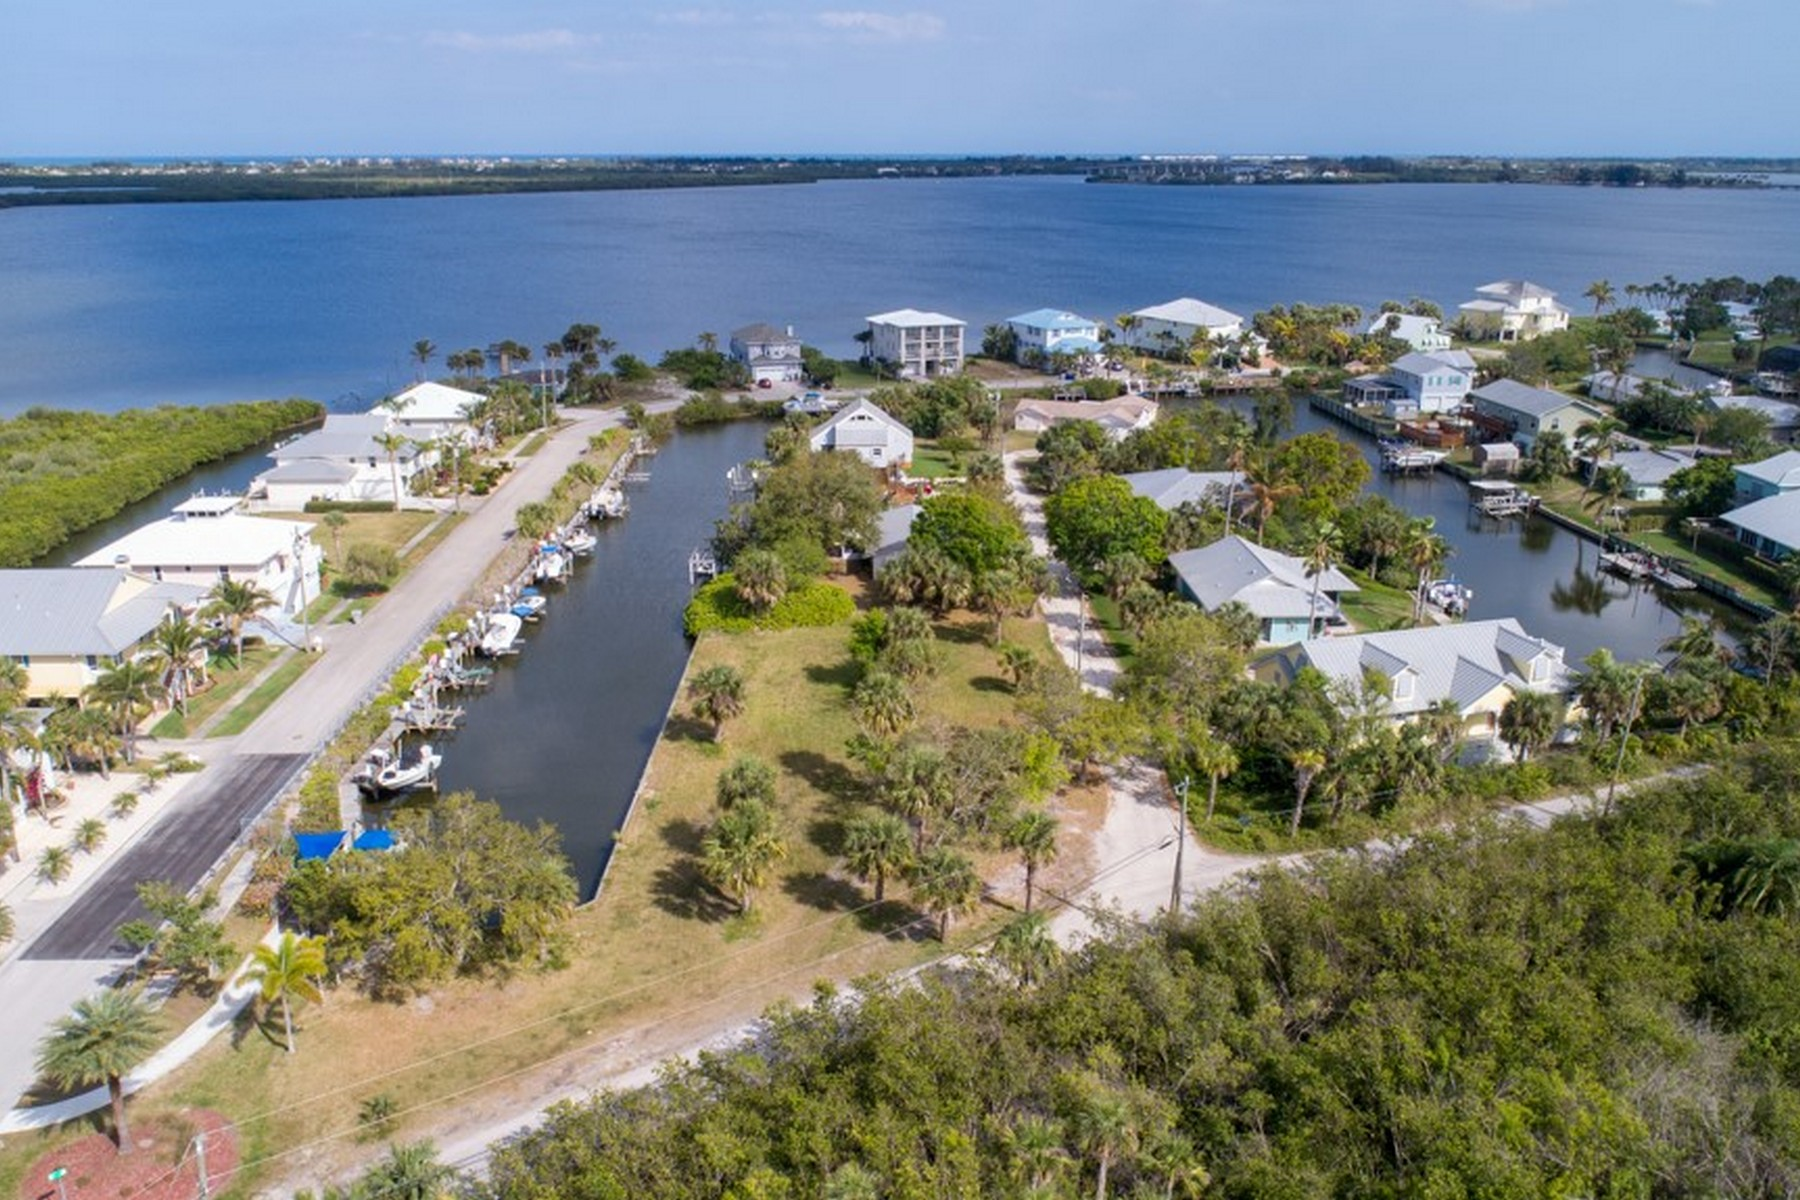 Boater's Dream 5290 94th Lane Sebastian, Florida 32958 Stati Uniti